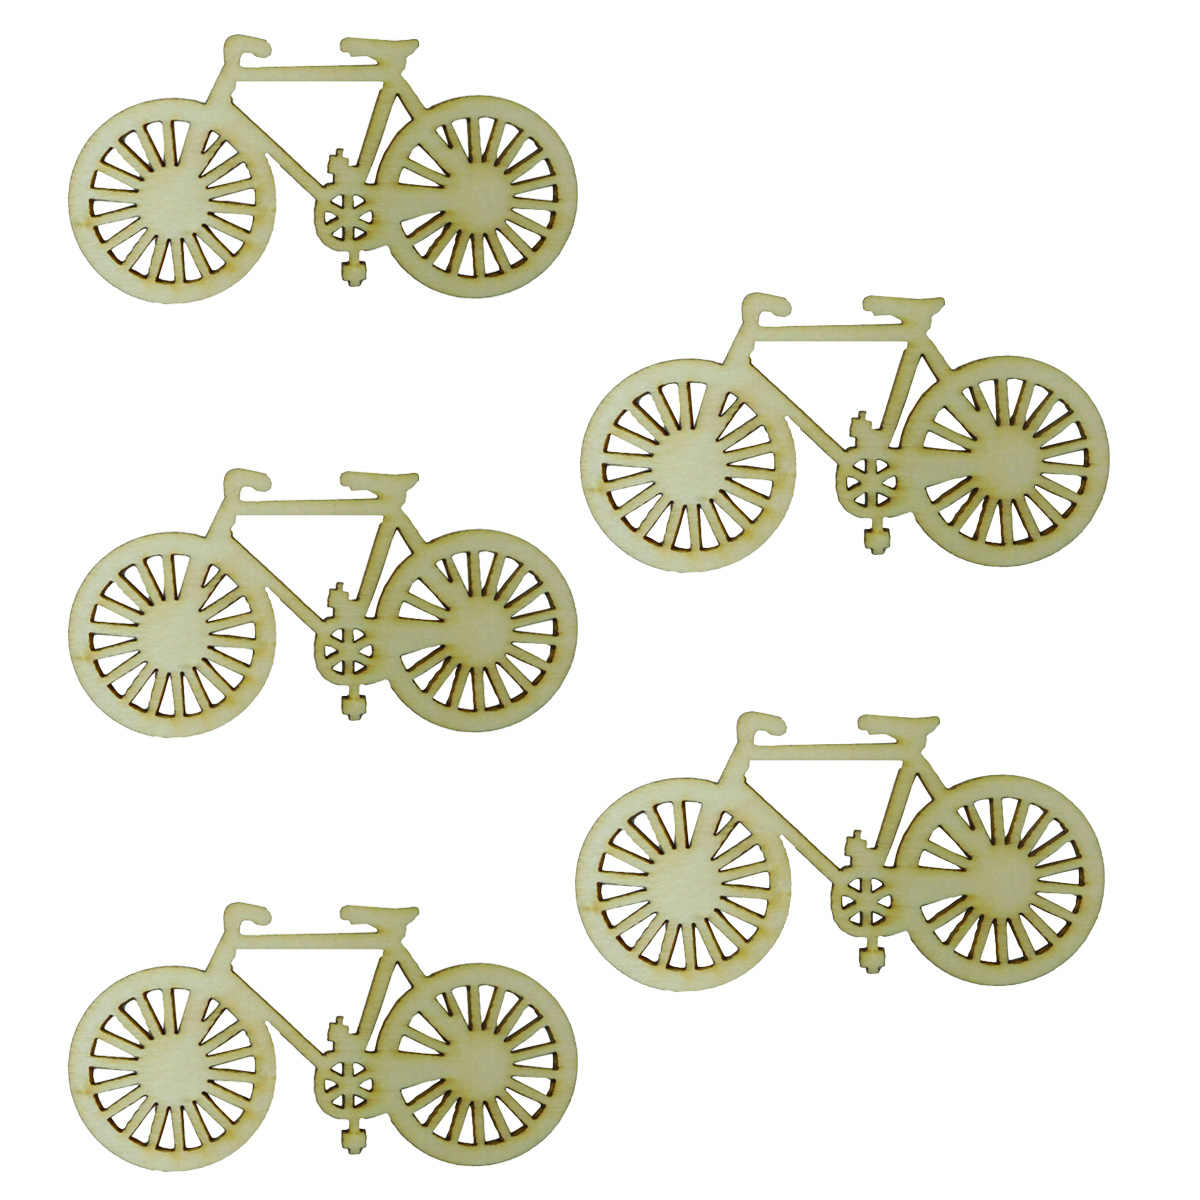 10-Piece Hollow DIY Cutout Creative Wooden Bicycle Ornaments Bike Wood Slices for Handworking Activities Crafting Home Decor